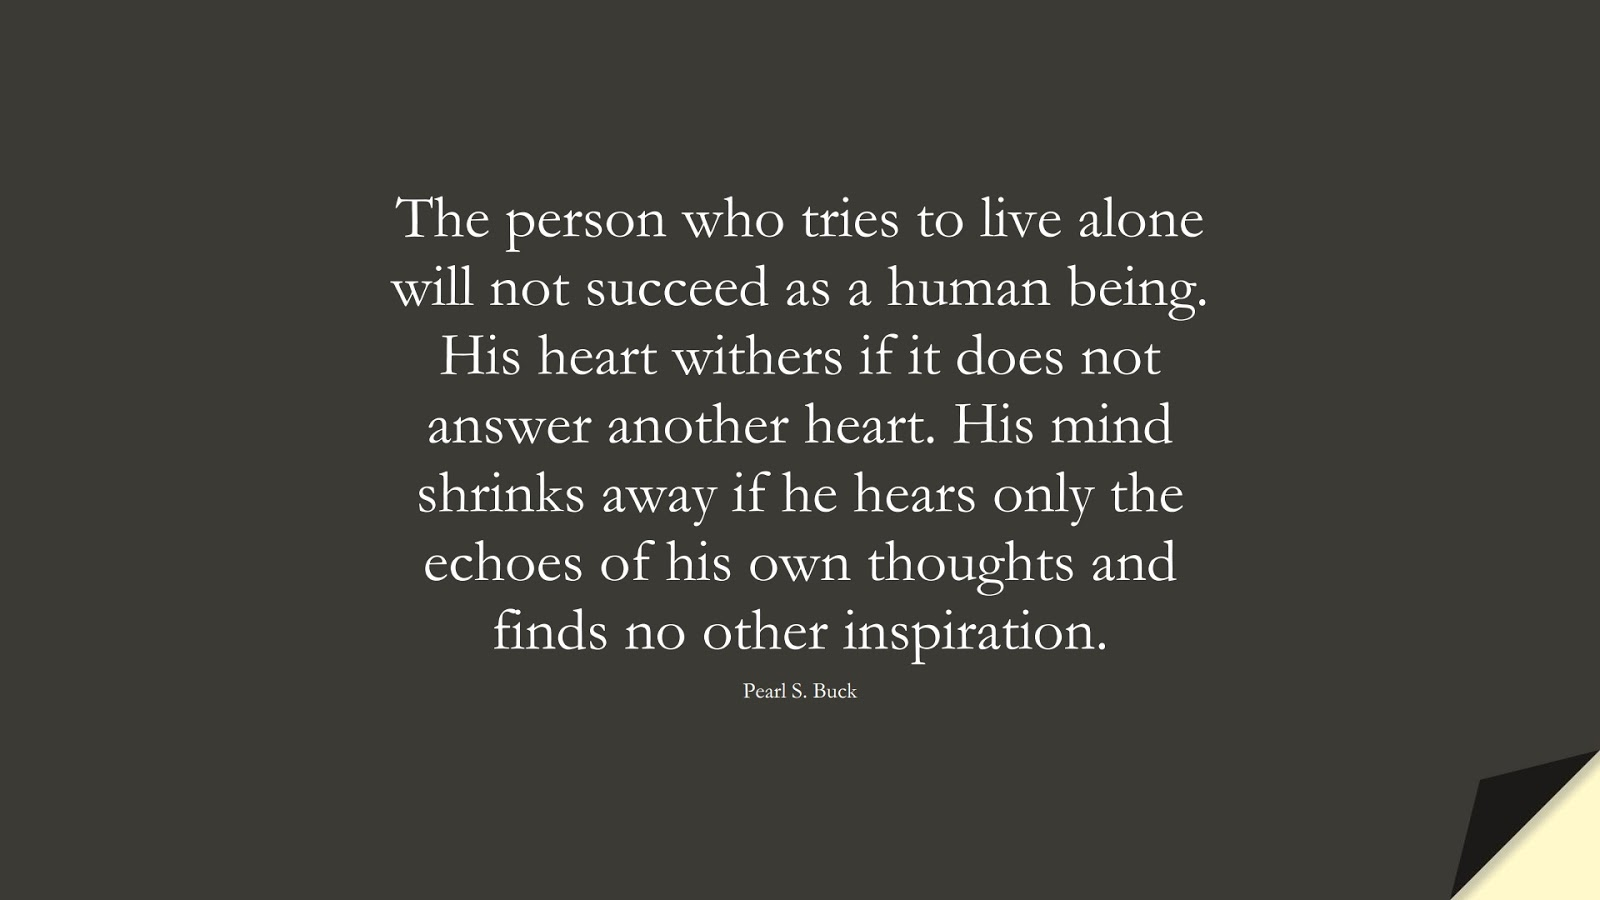 The person who tries to live alone will not succeed as a human being. His heart withers if it does not answer another heart. His mind shrinks away if he hears only the echoes of his own thoughts and finds no other inspiration. (Pearl S. Buck);  #HumanityQuotes